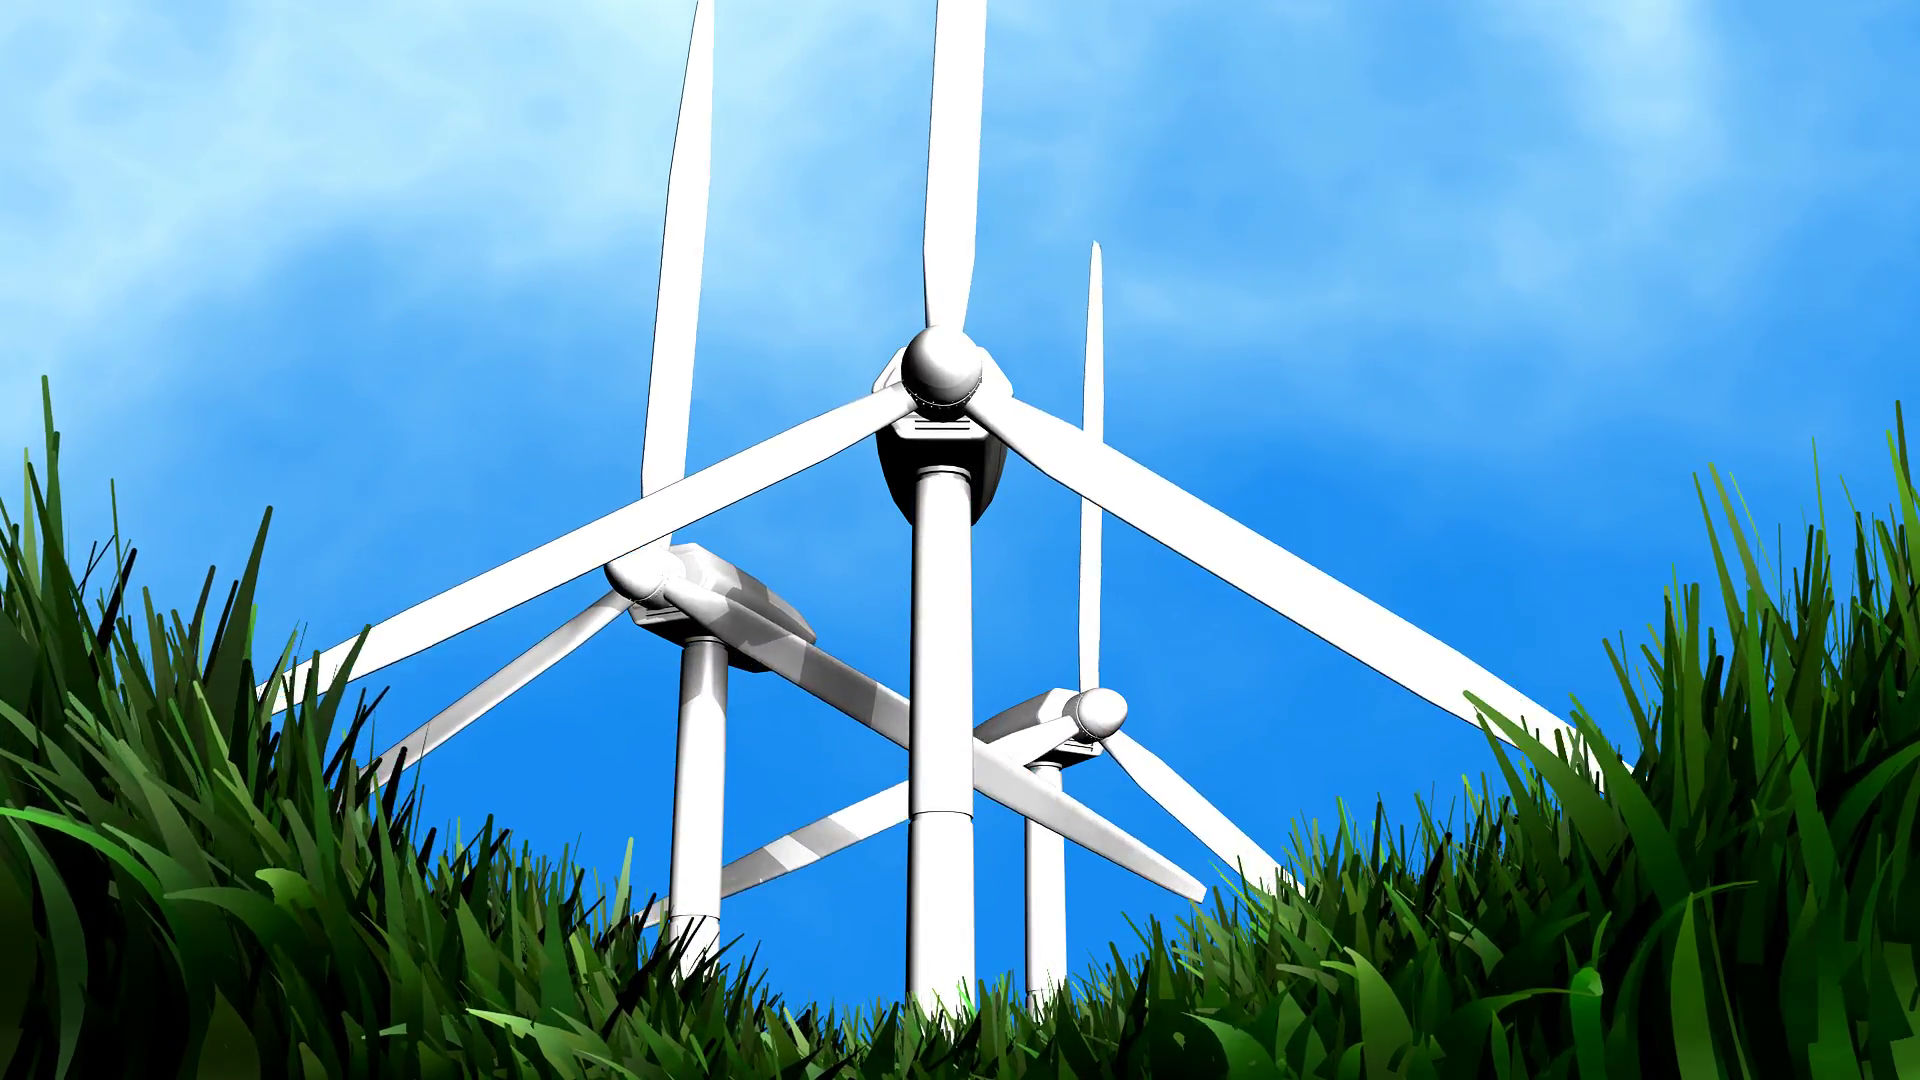 Types And Construction Of Wind Turbines - Wind-turbine-supplies co uk